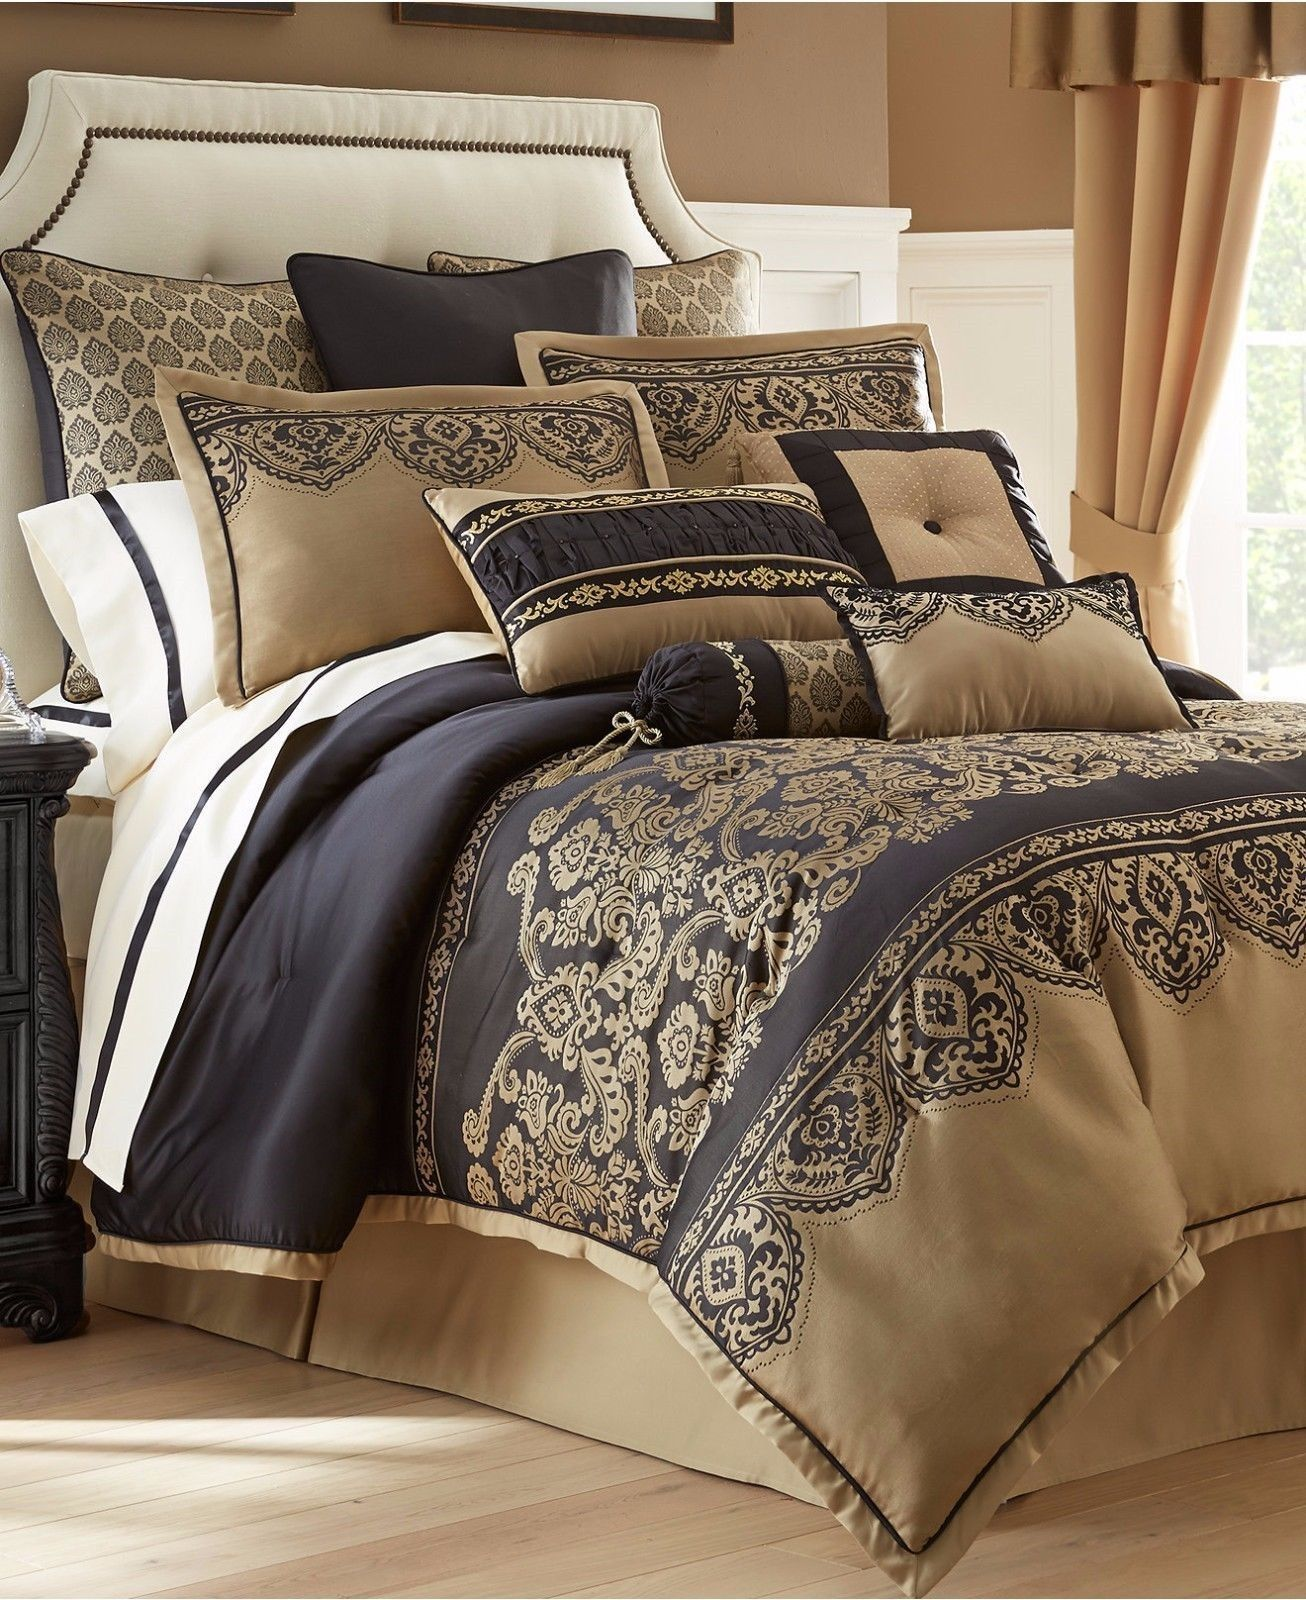 waterford bannon 6p king comforter set black and 41 similar items. Black Bedroom Furniture Sets. Home Design Ideas